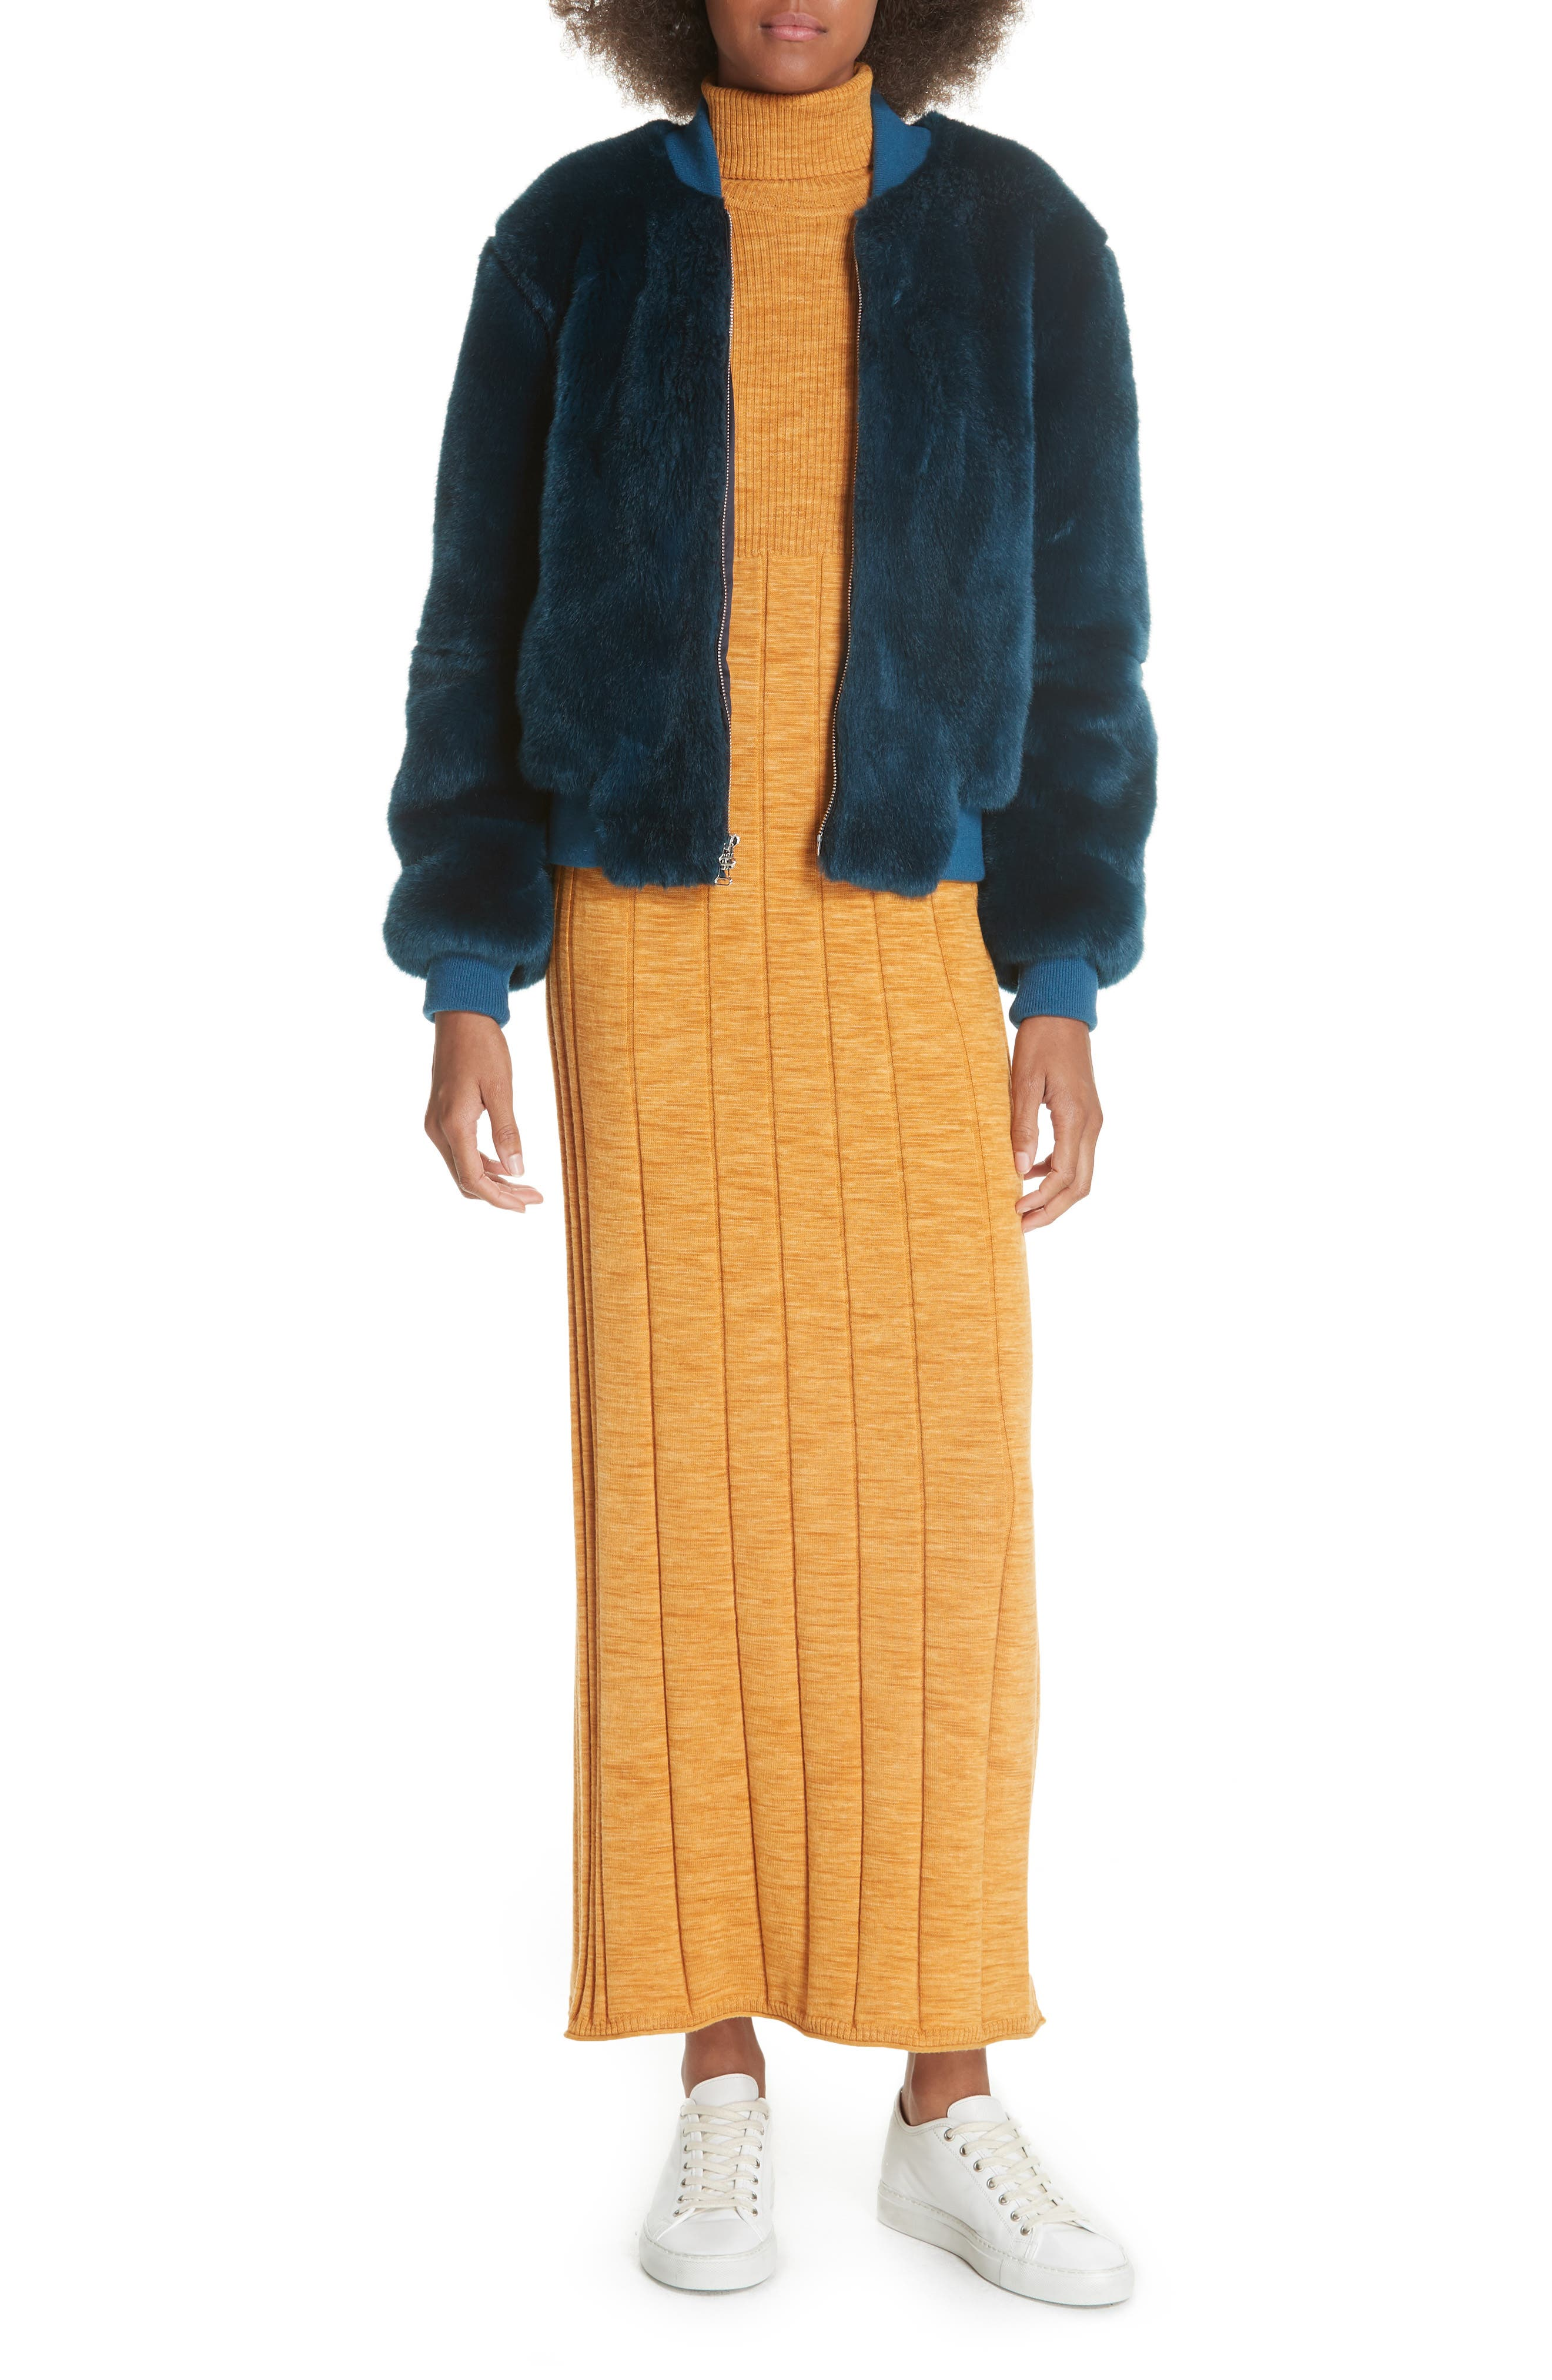 Clementine Ribbed Space Dye Wool Dress,                             Alternate thumbnail 7, color,                             700